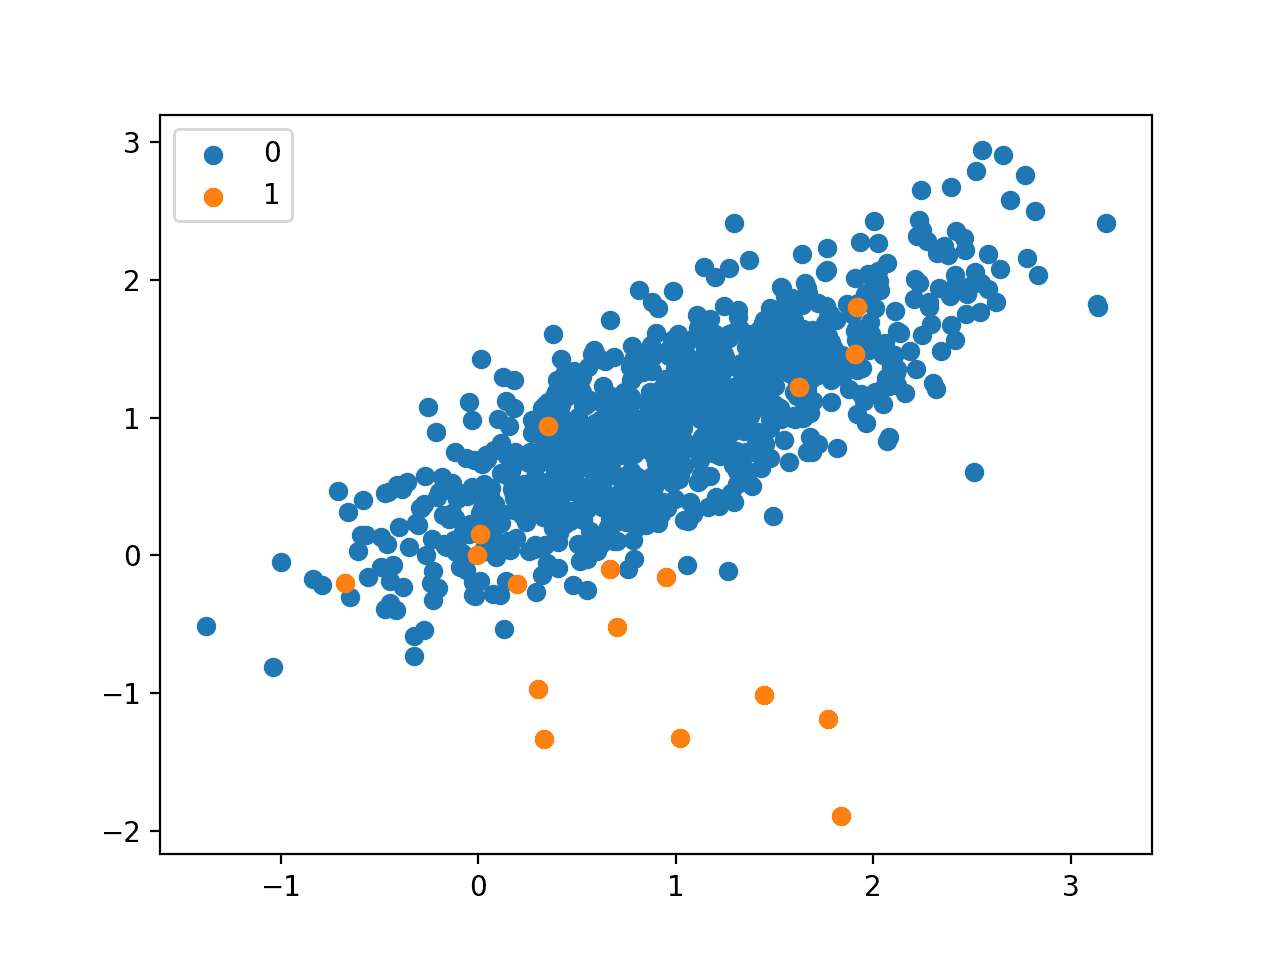 Scatter Plot of Imbalanced Binary Classification Dataset